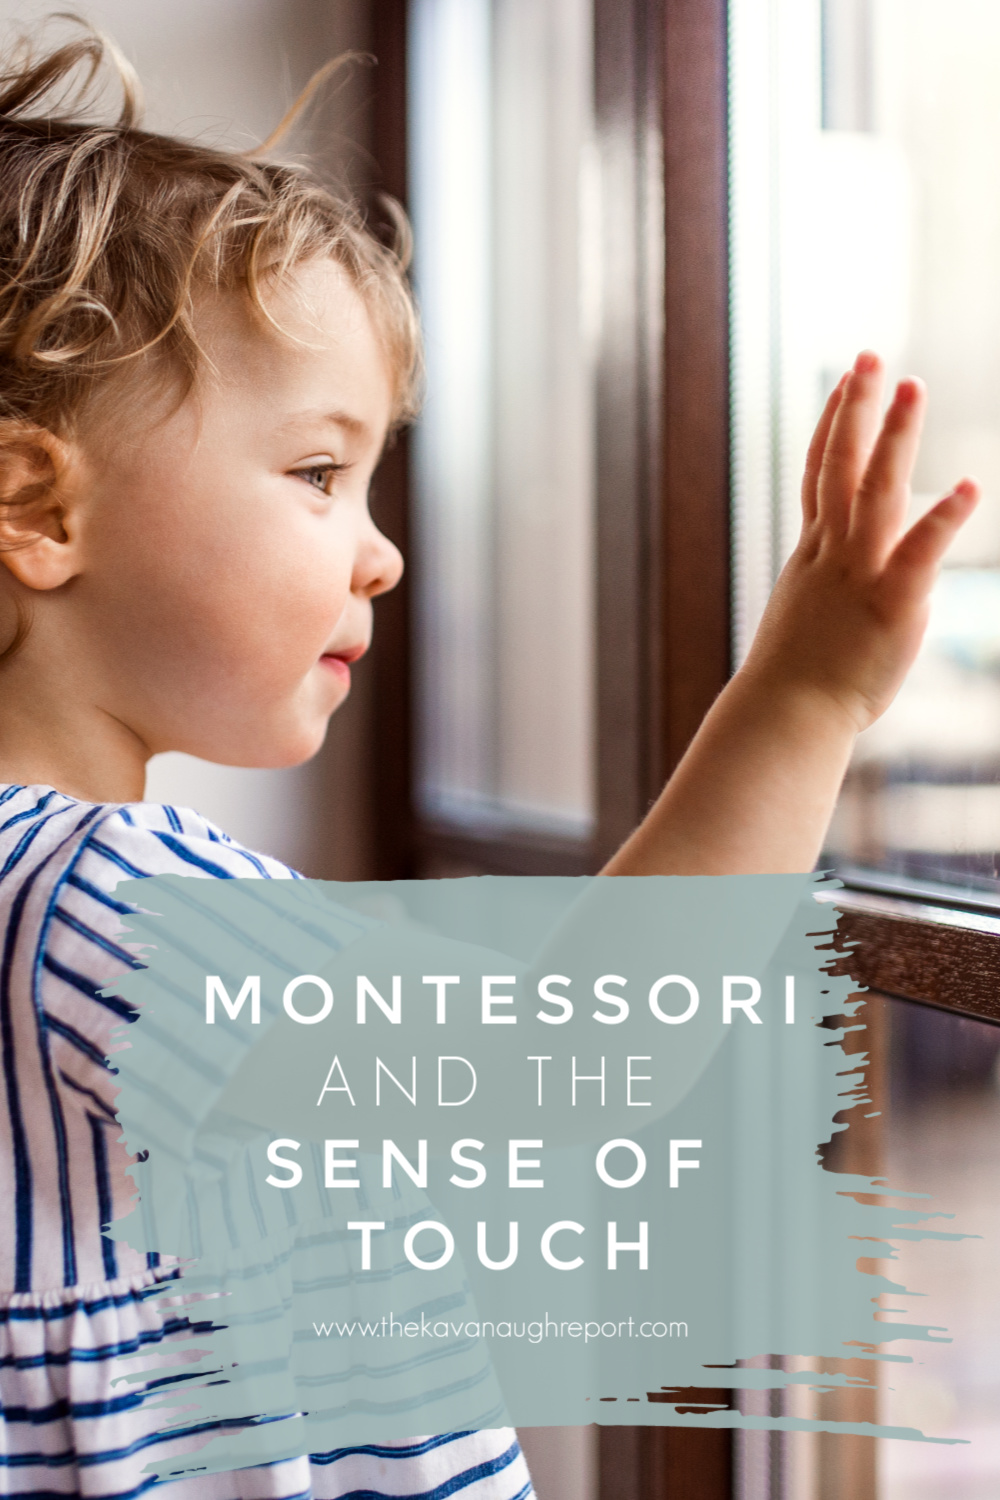 Montessori parenting advice on developing the sense of touch - an important step in children's learning plus some easy activities to support this need